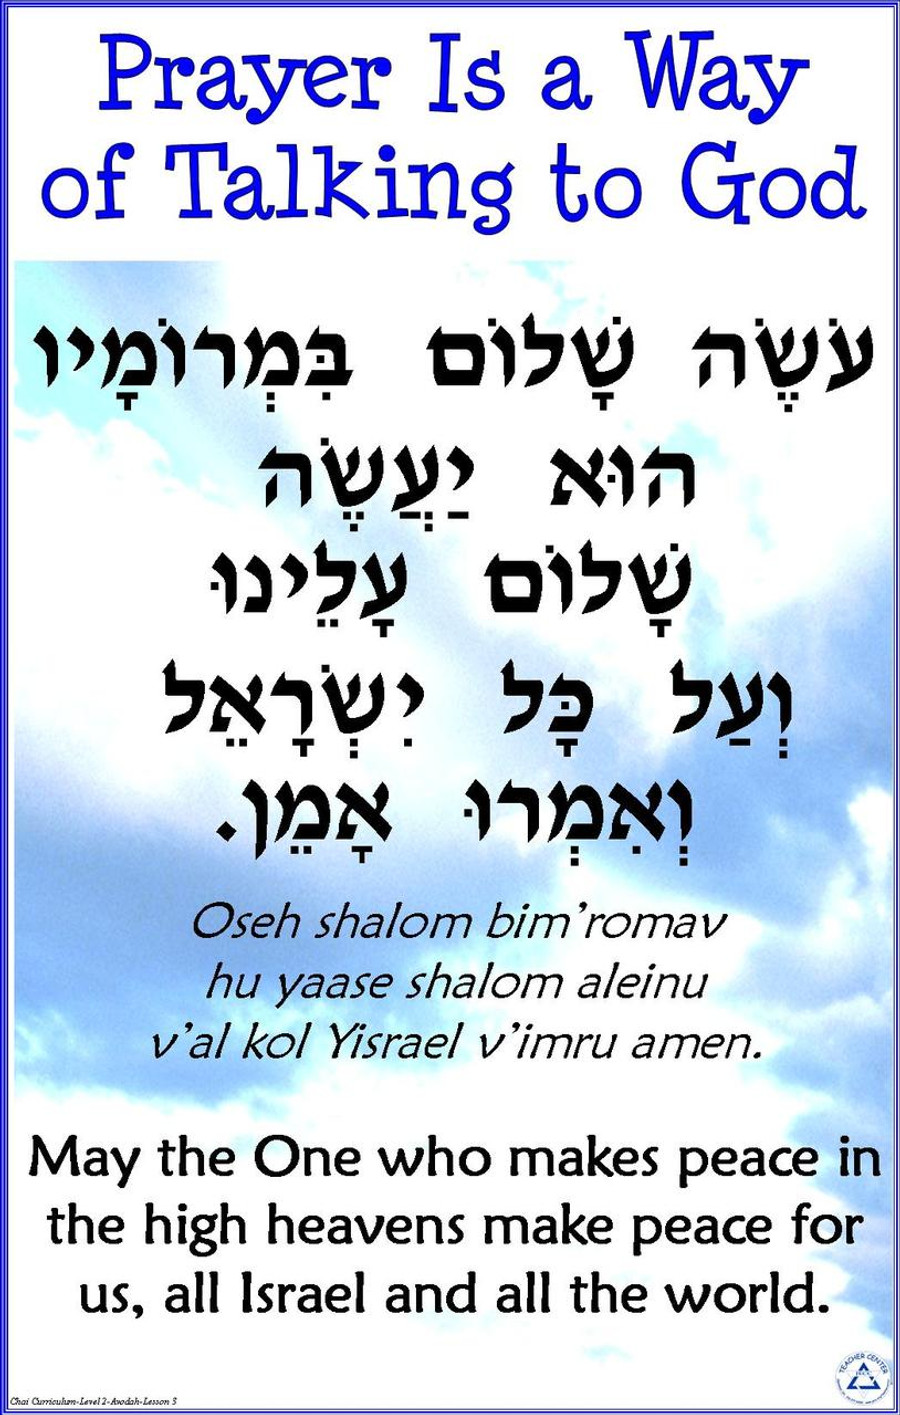 Prayer is a Way Poster